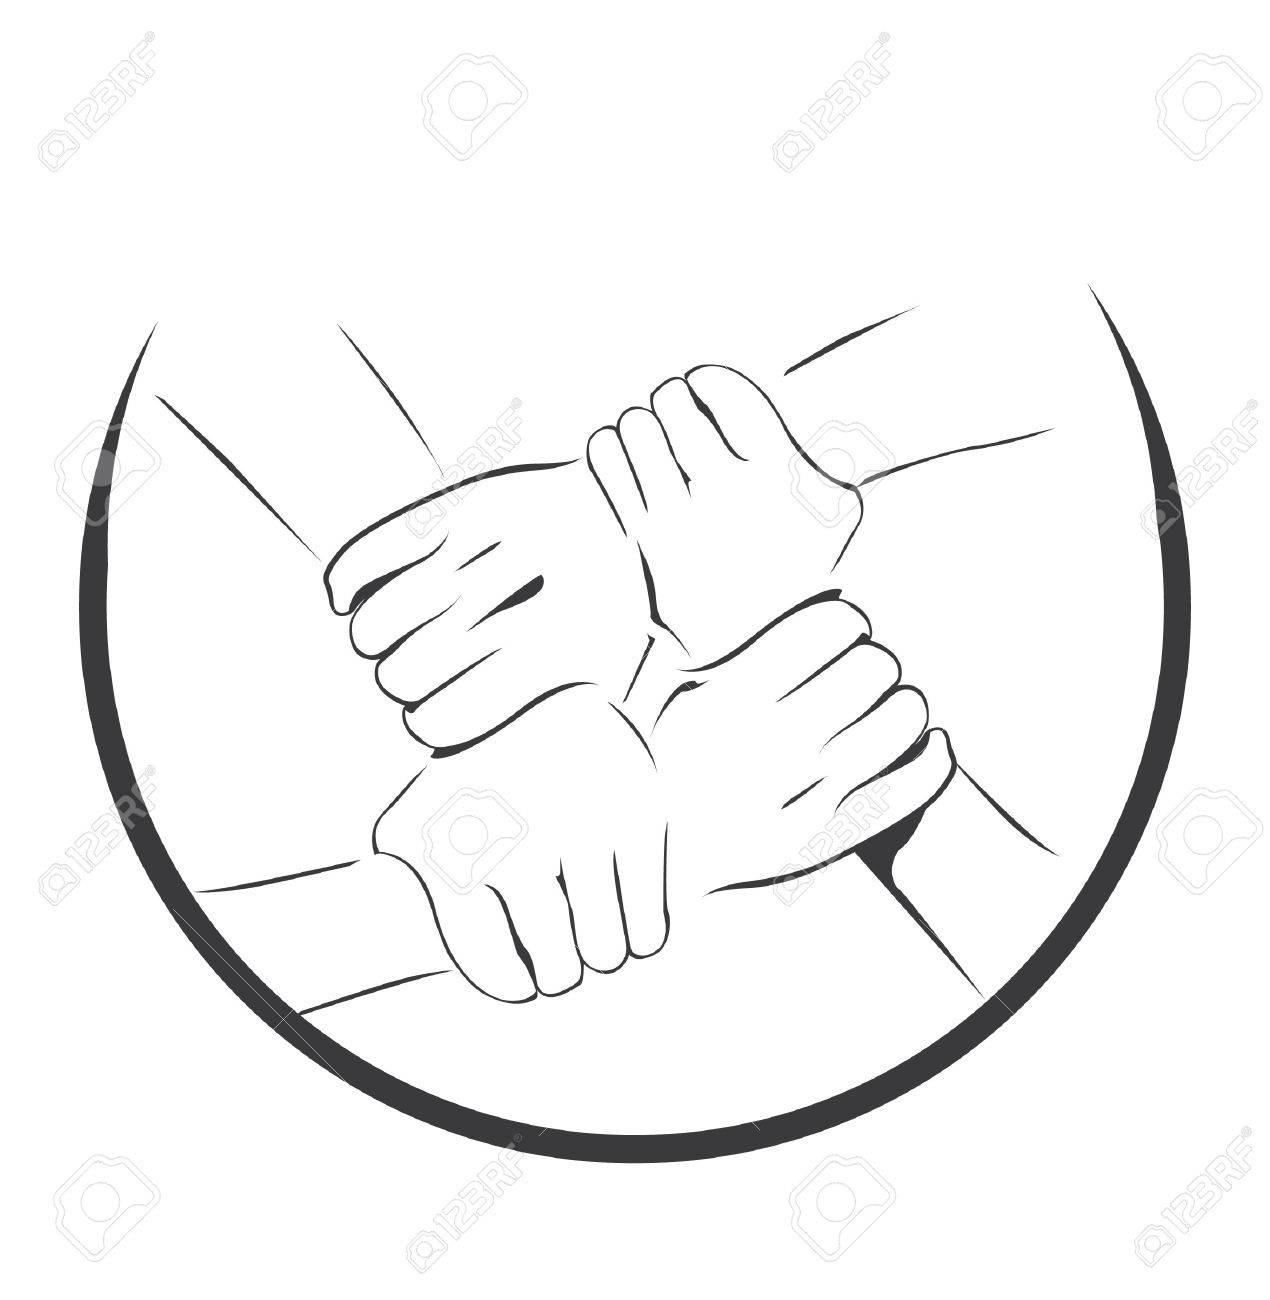 Unity Hand Symbol Royalty Free Cliparts Vectors And Stock Illustration Image 27517084